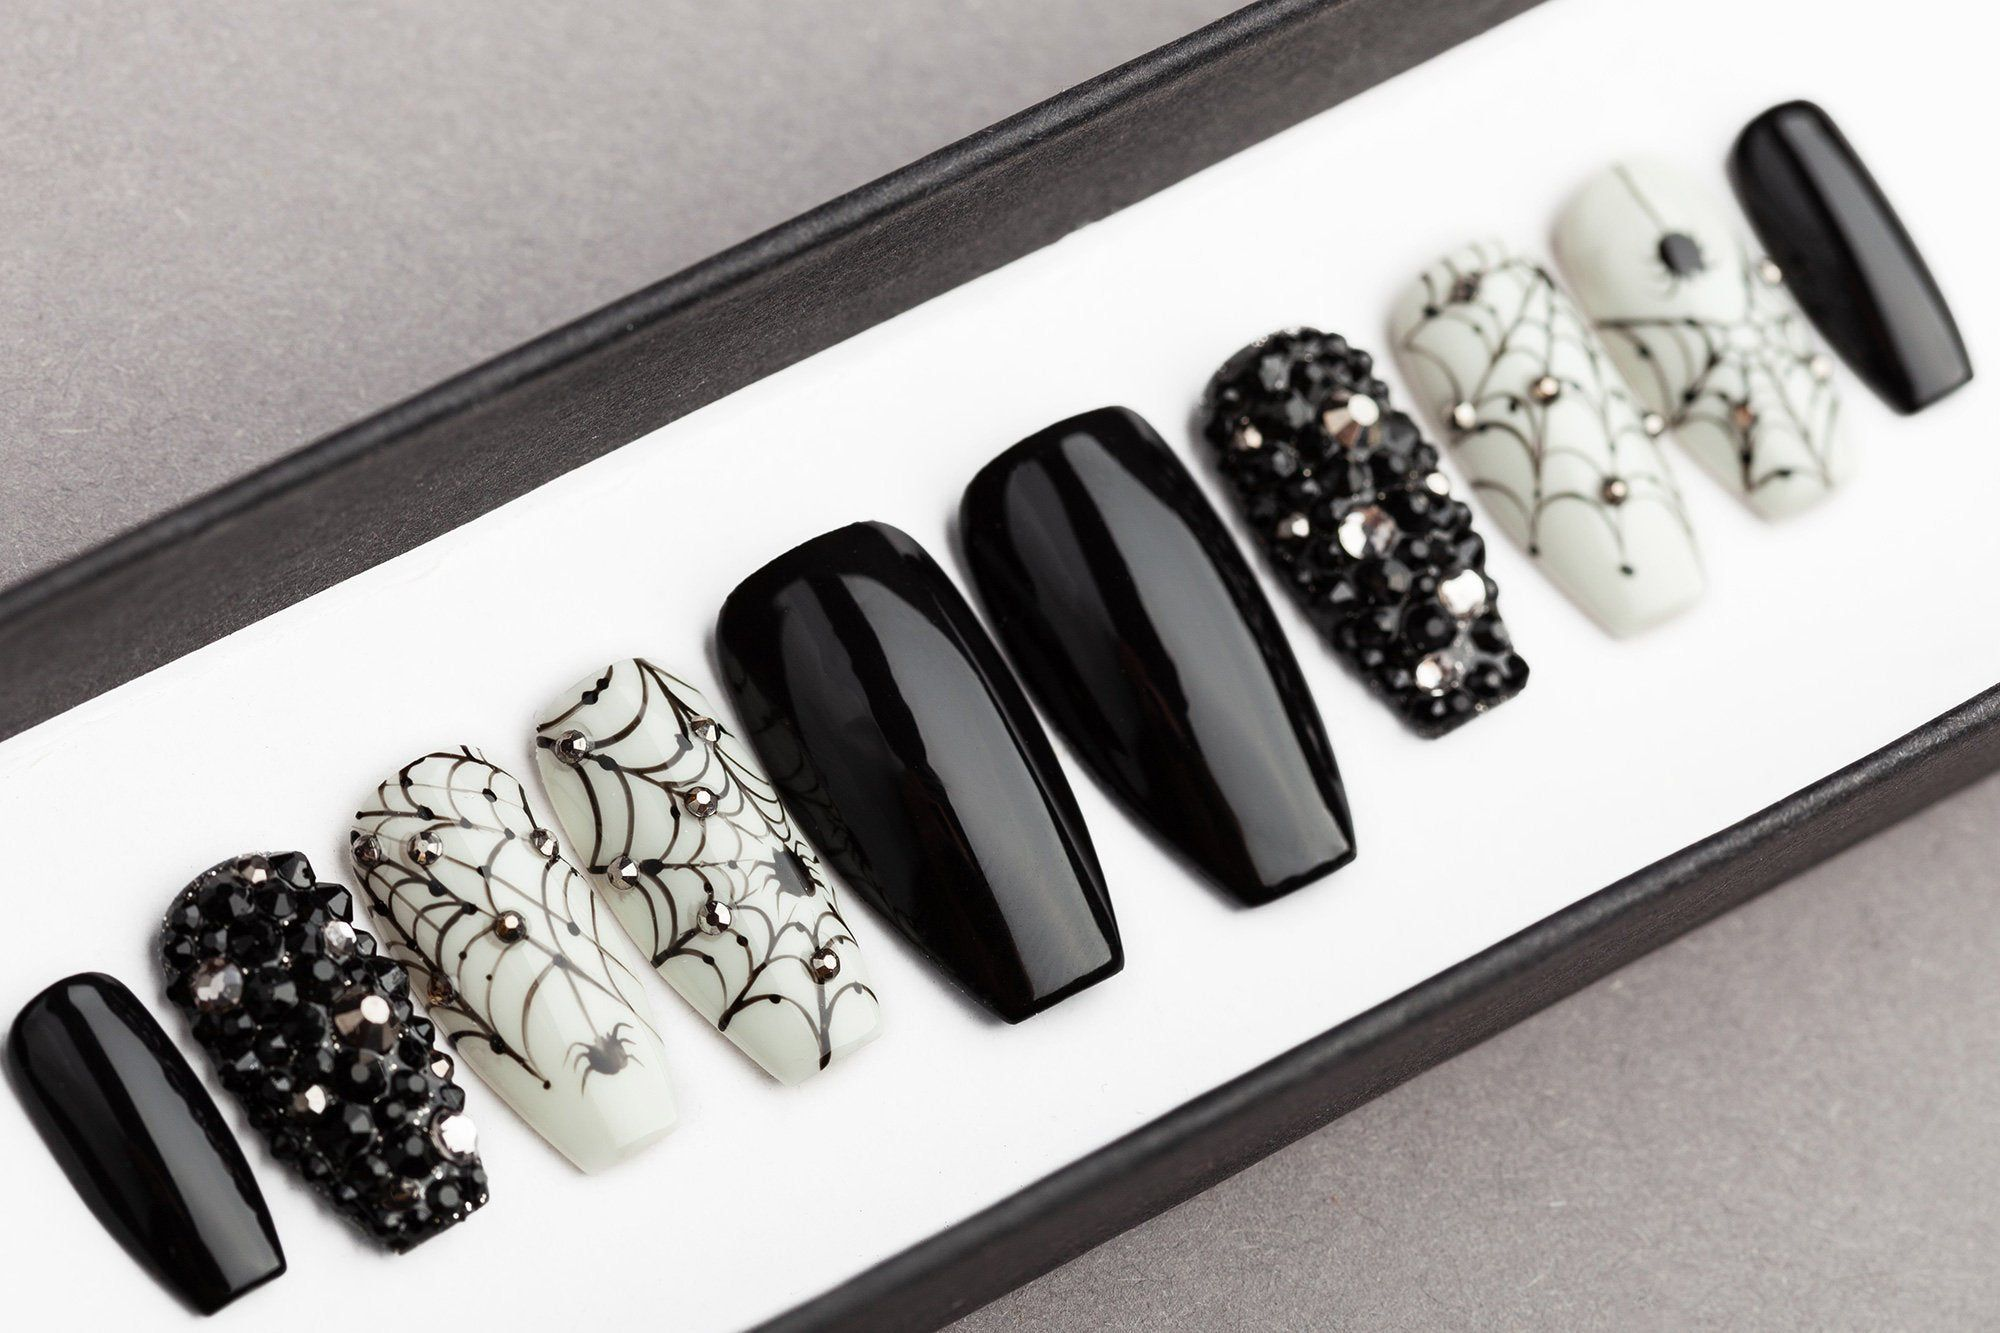 Spiders Webs Halloween Press On Nails With Rhinestones False Nails Glue On Nails Hand Painted Nail Art Fake Nails In 2020 Halloween Press On Nails Glue On Nails Press On Nails